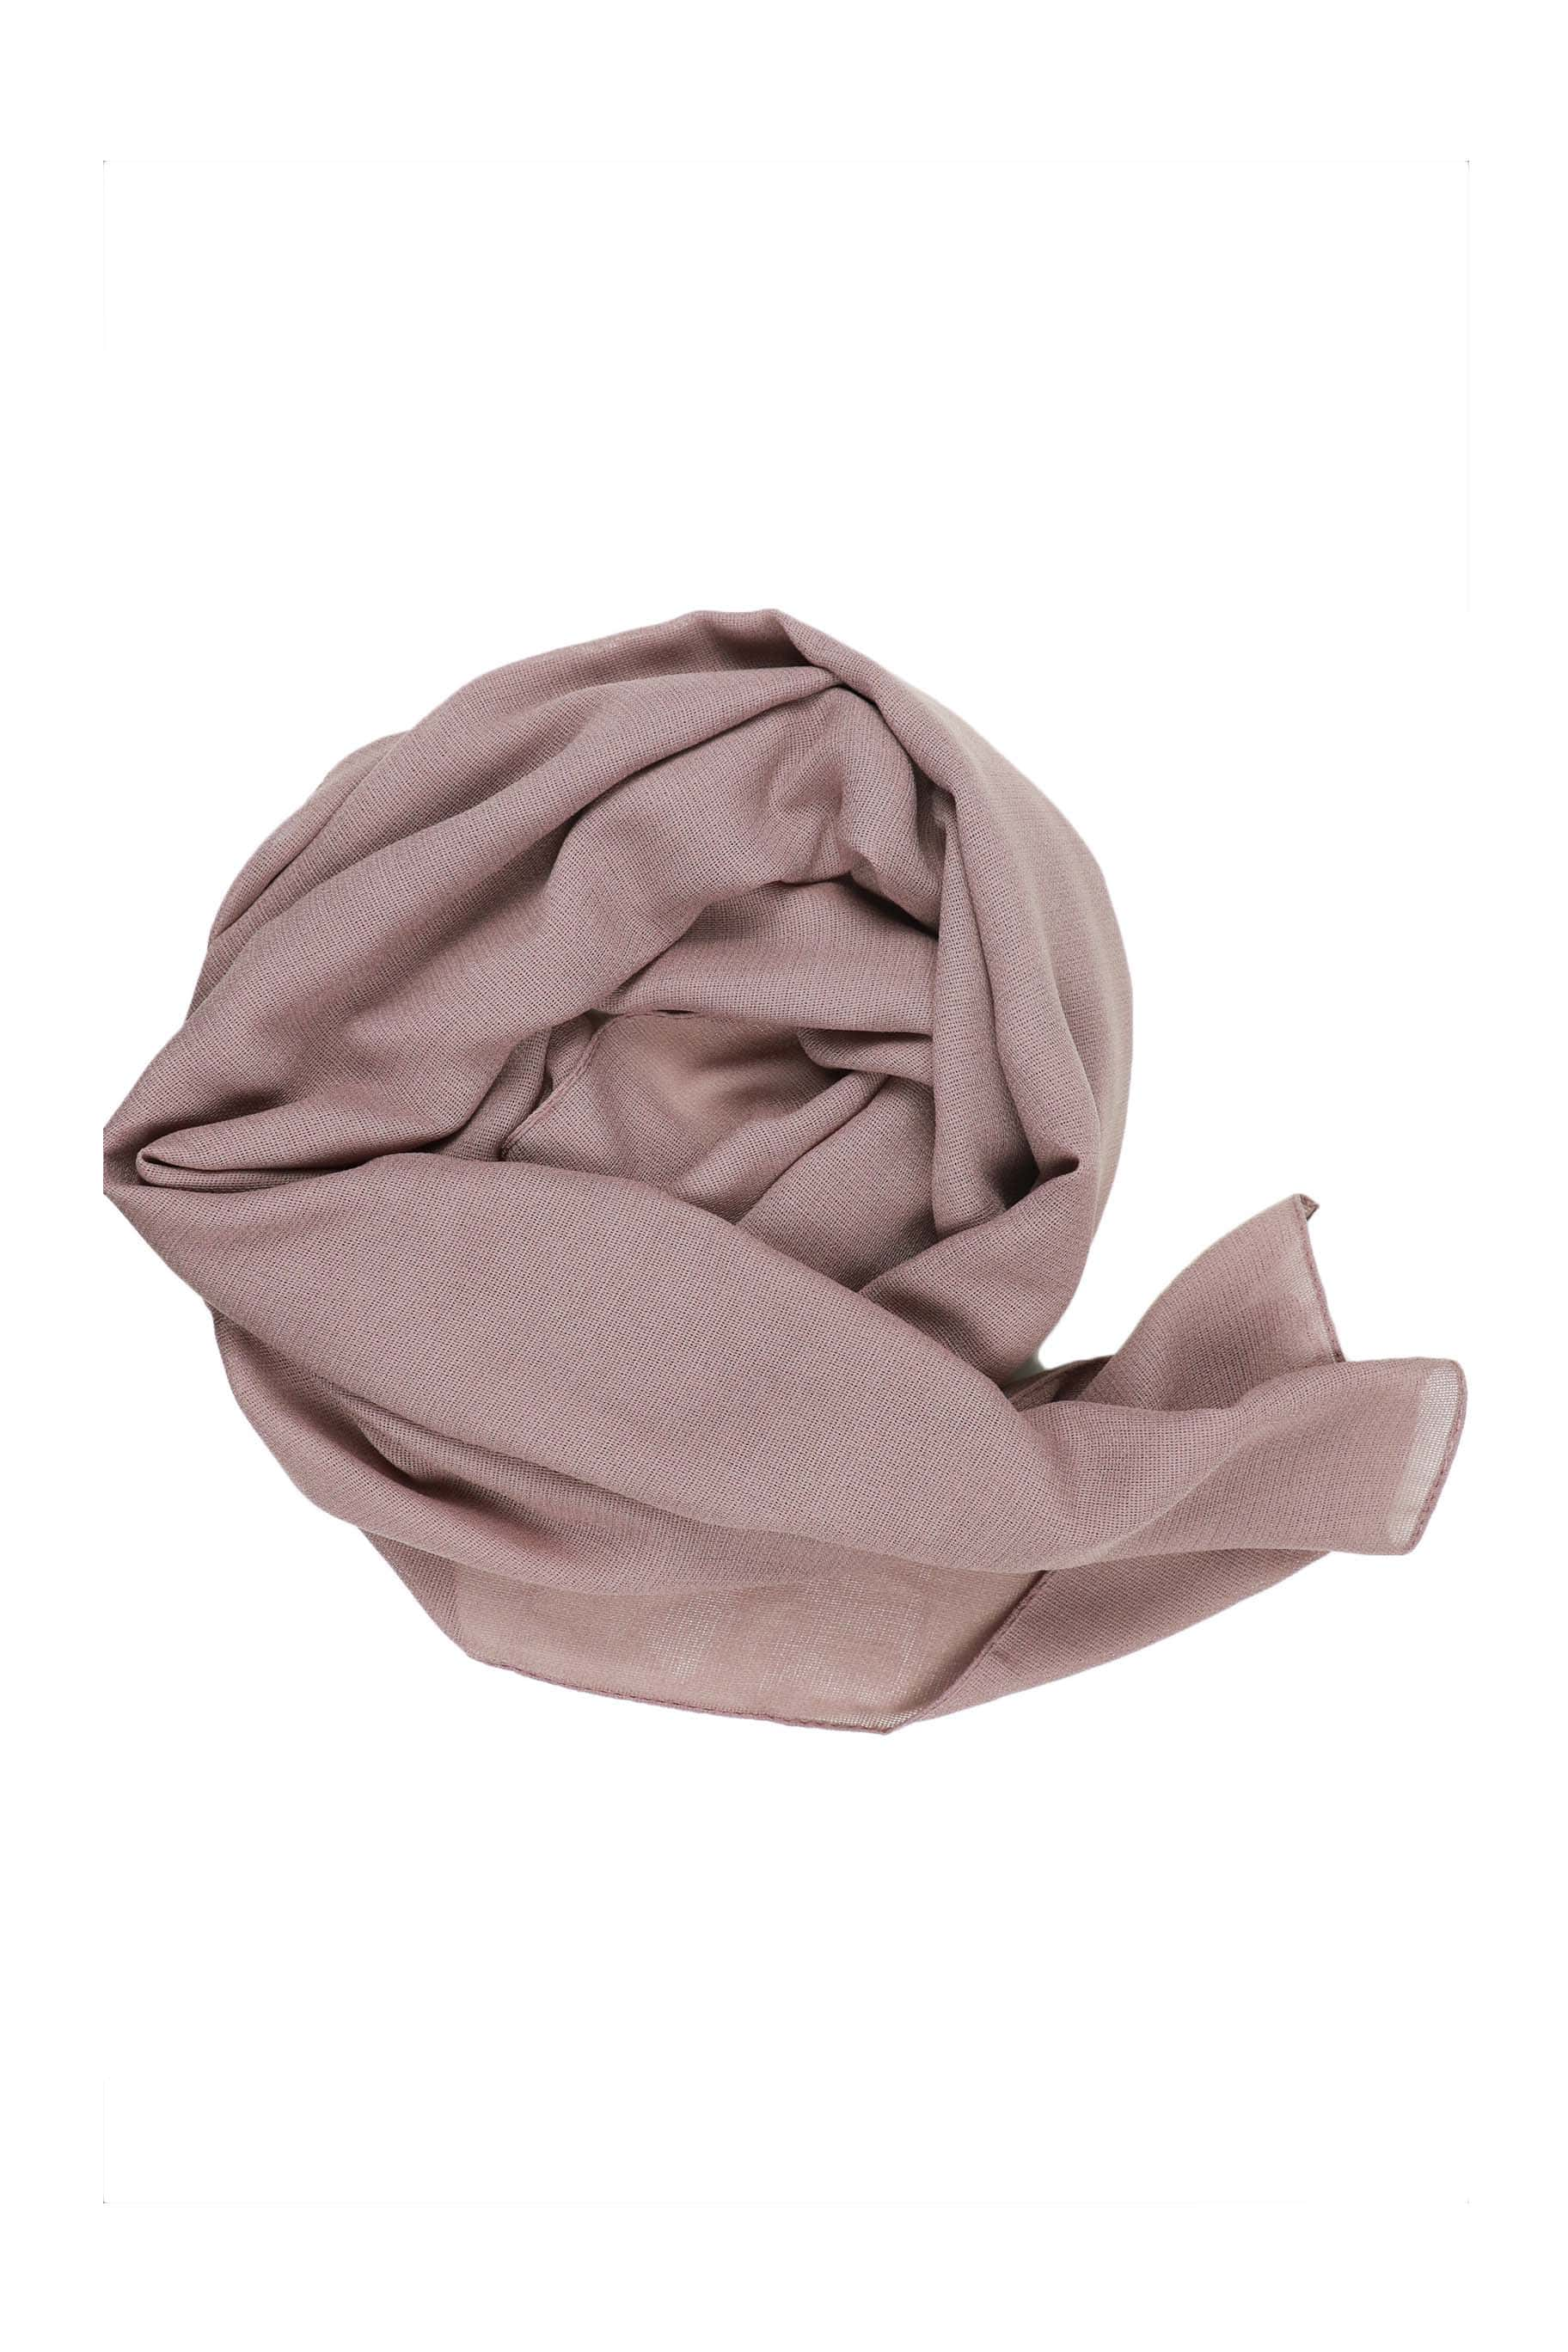 Mauve Purple Jute Cotton - Jute-Cotton Hijab - The Modest Look